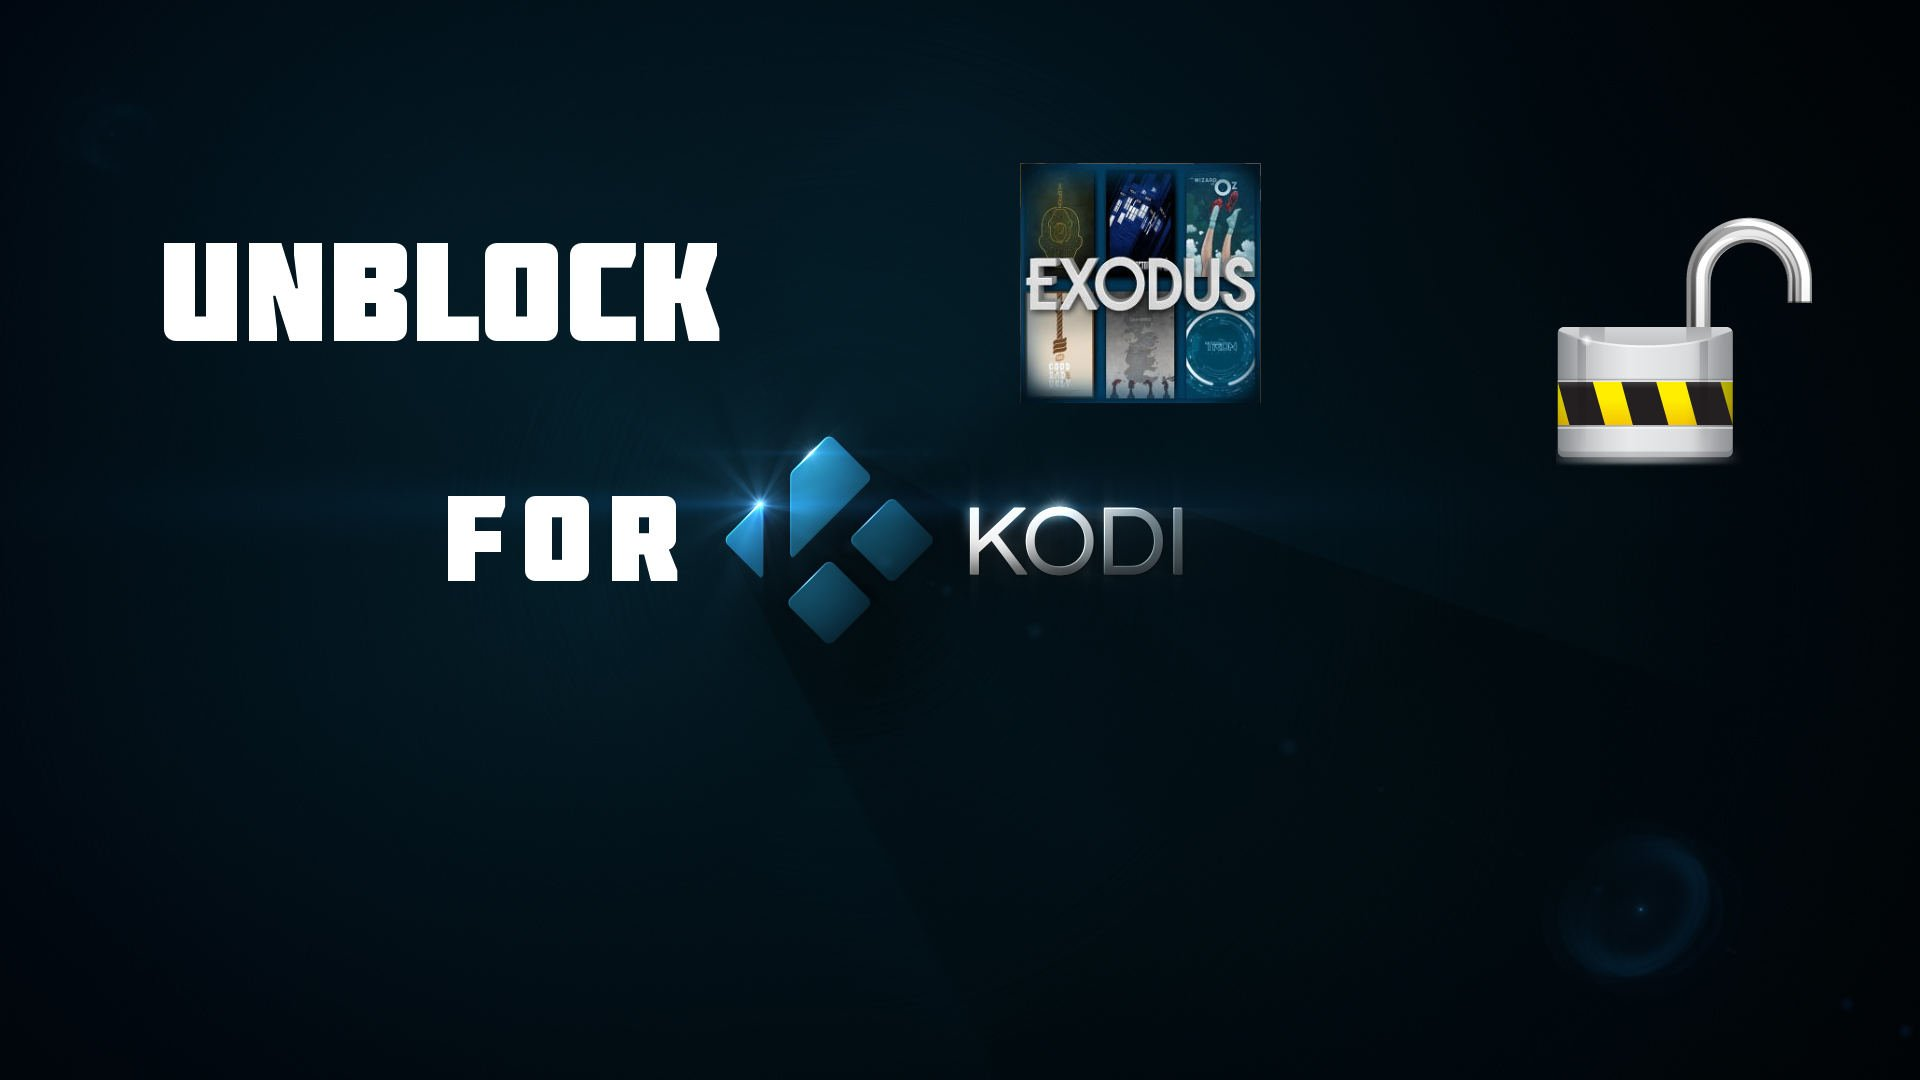 Exodus Unblock Kodi Guide: UNBLOCK the EASY Way